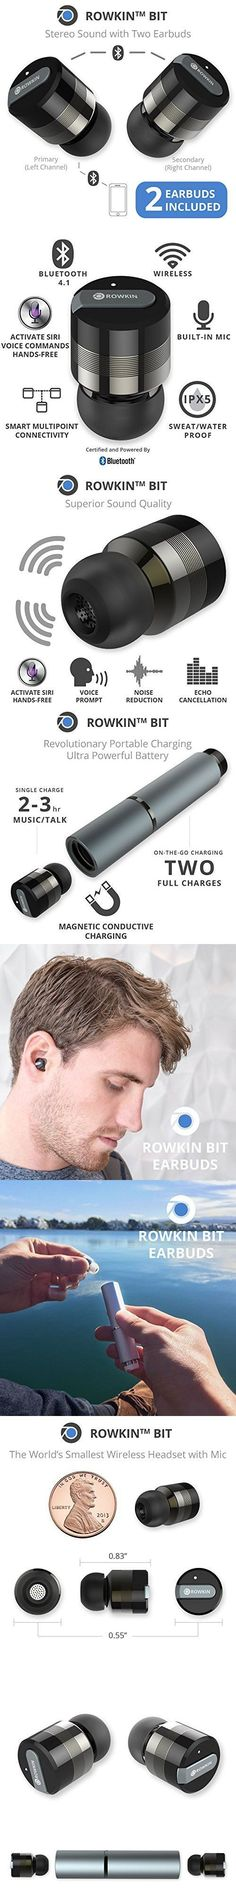 Rowkin Bit Stereo Bluetooth Headphones, Wireless Earbuds with Mic. Smallest Cordless Hands-Free In-Ear Earphones Headsets with Portable Charger & Noise Reduction for Running and iPhone. (Space Gray)